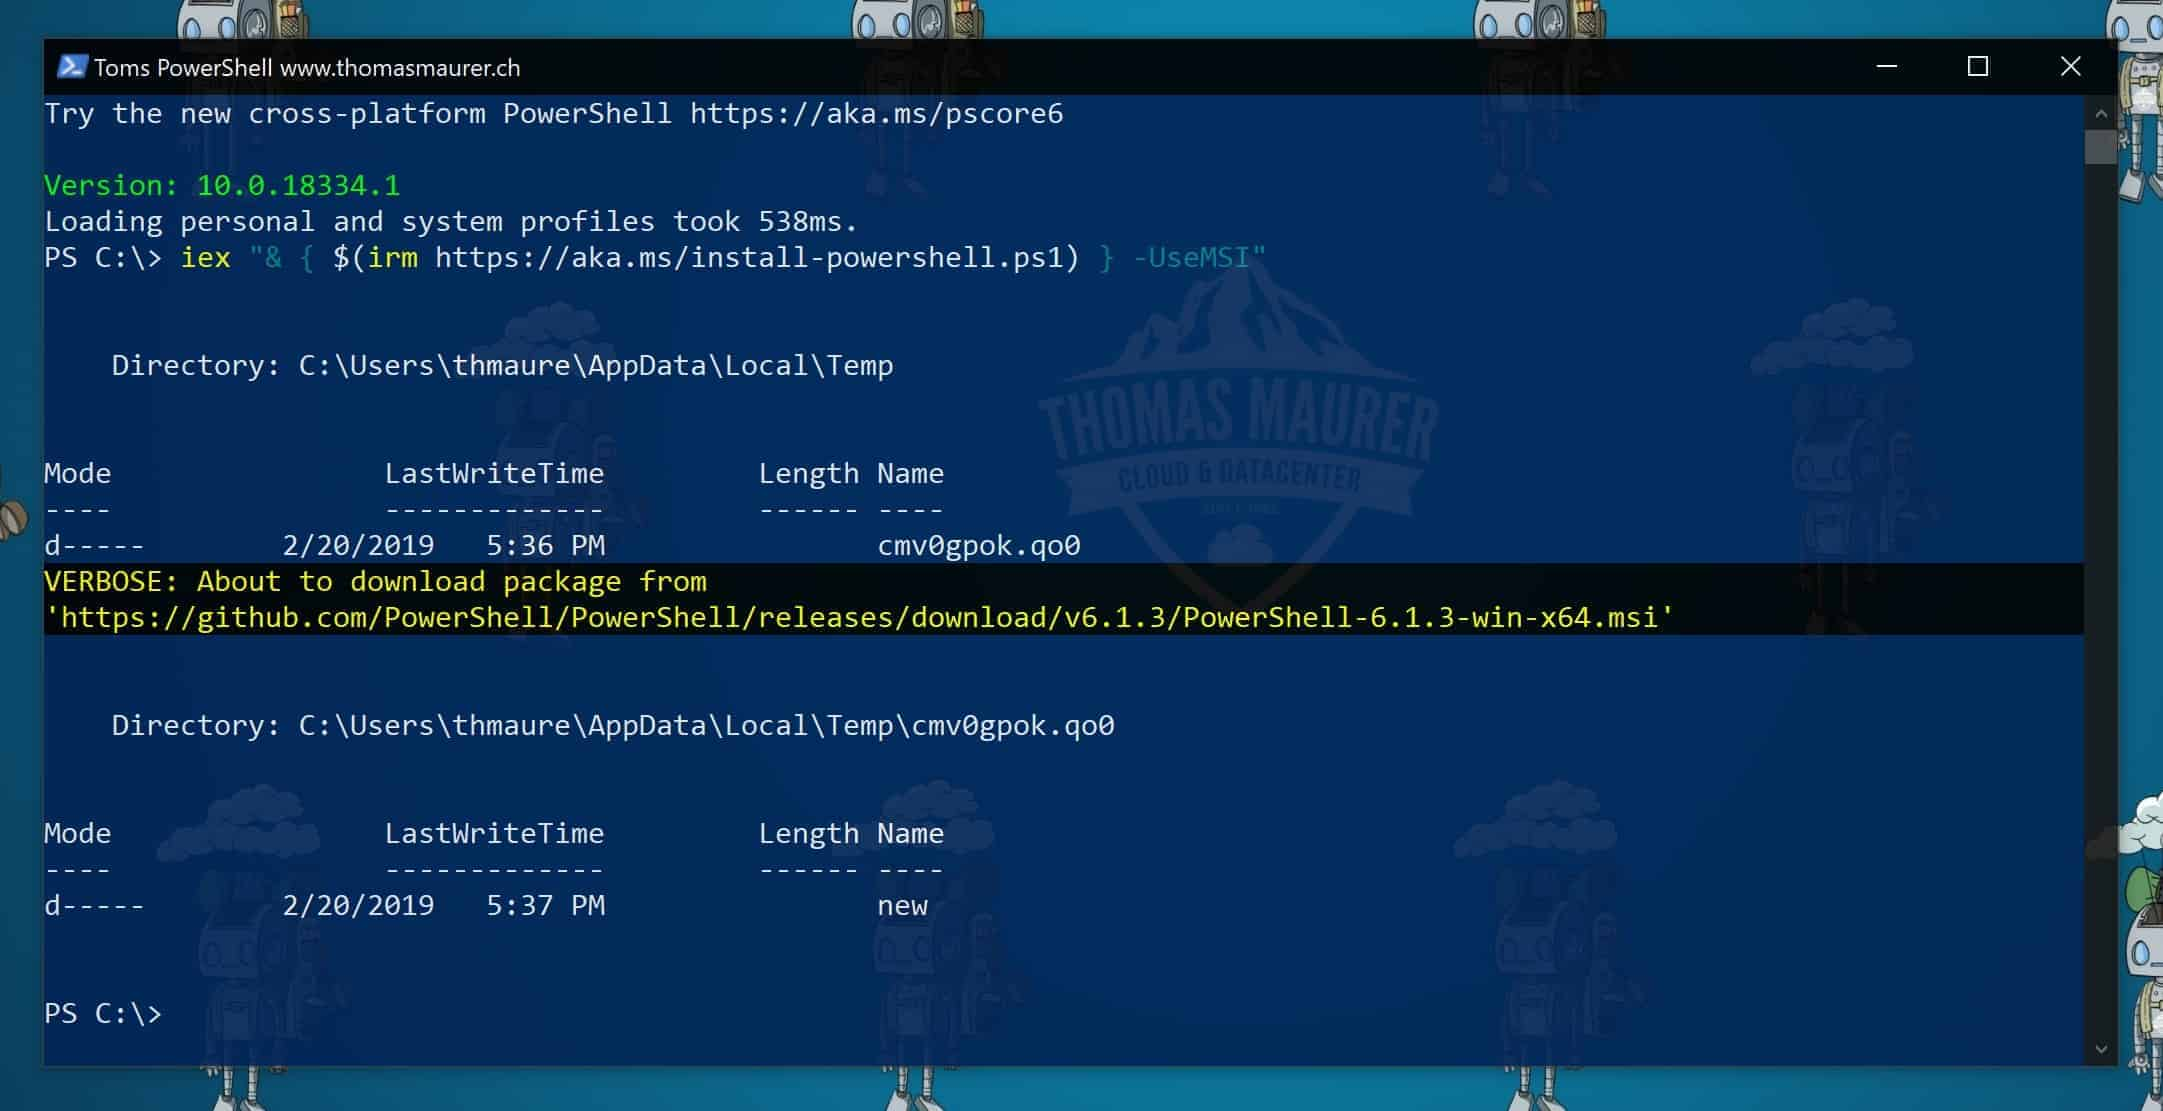 How to Install and Update PowerShell 6 - Thomas Maurer